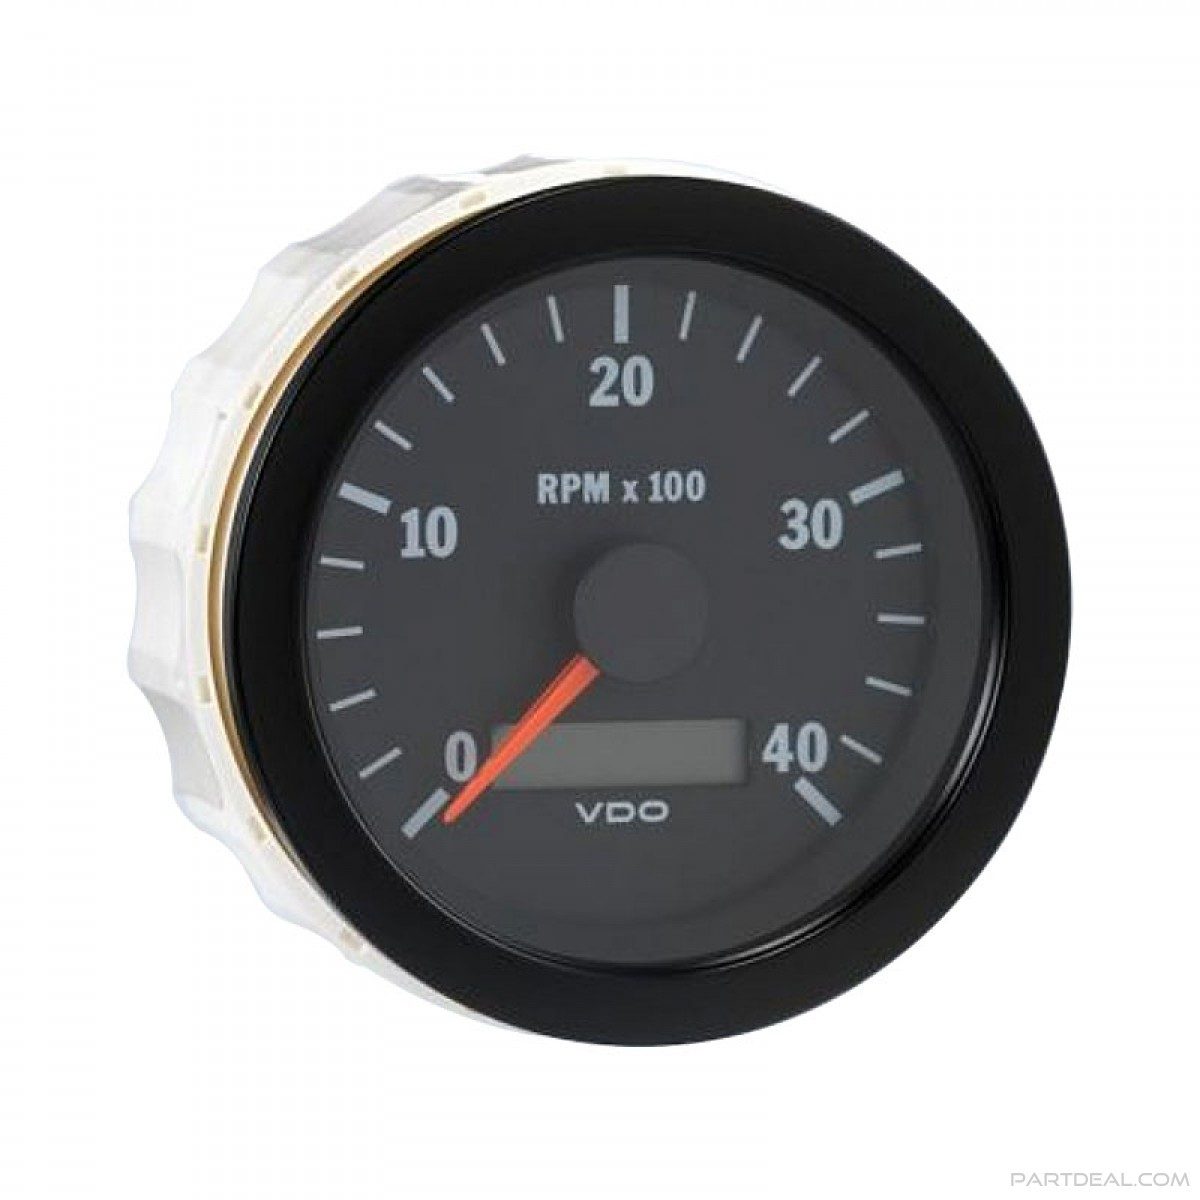 Zn 4393 Vdo Tachometer Wiring Diagram 4000 Wiring Diagram